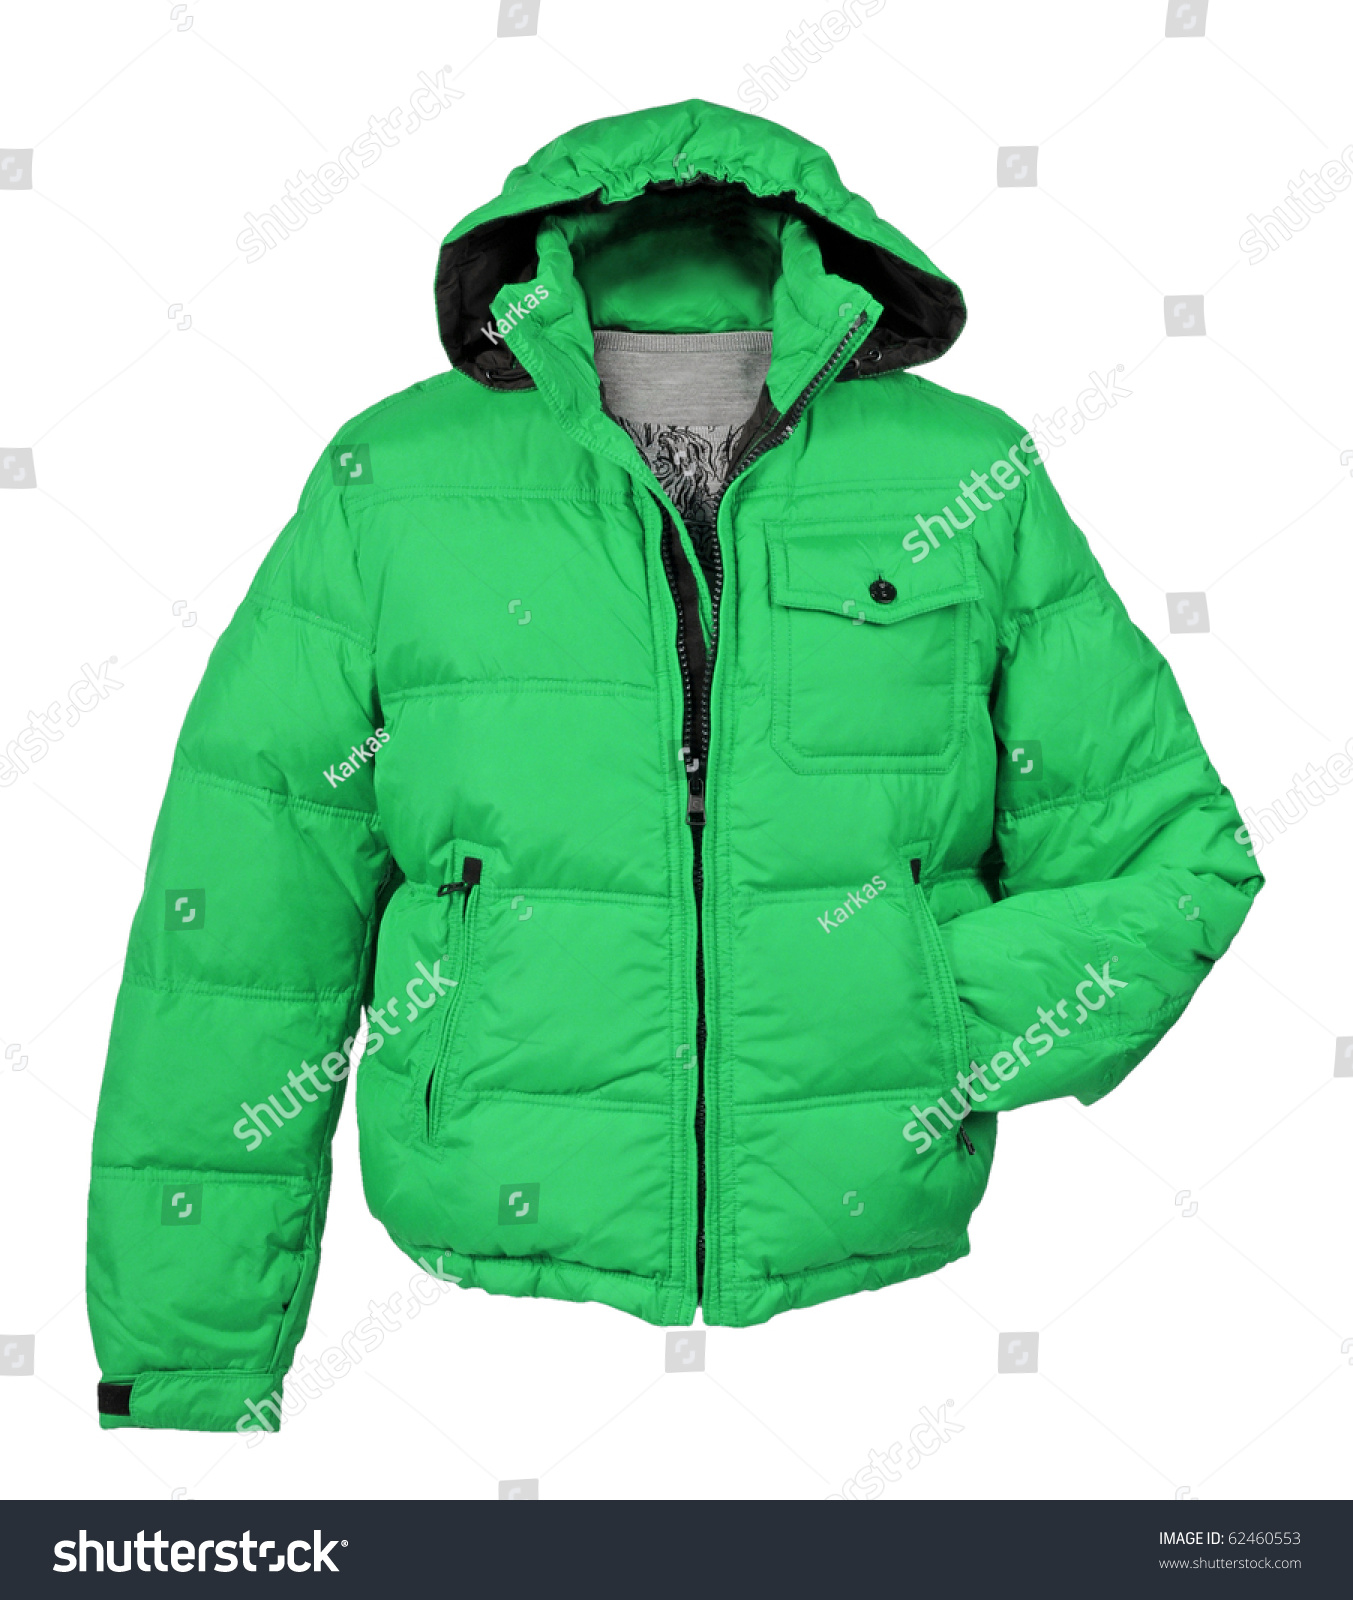 Green Jacket Stock Photo 62460553 - Shutterstock